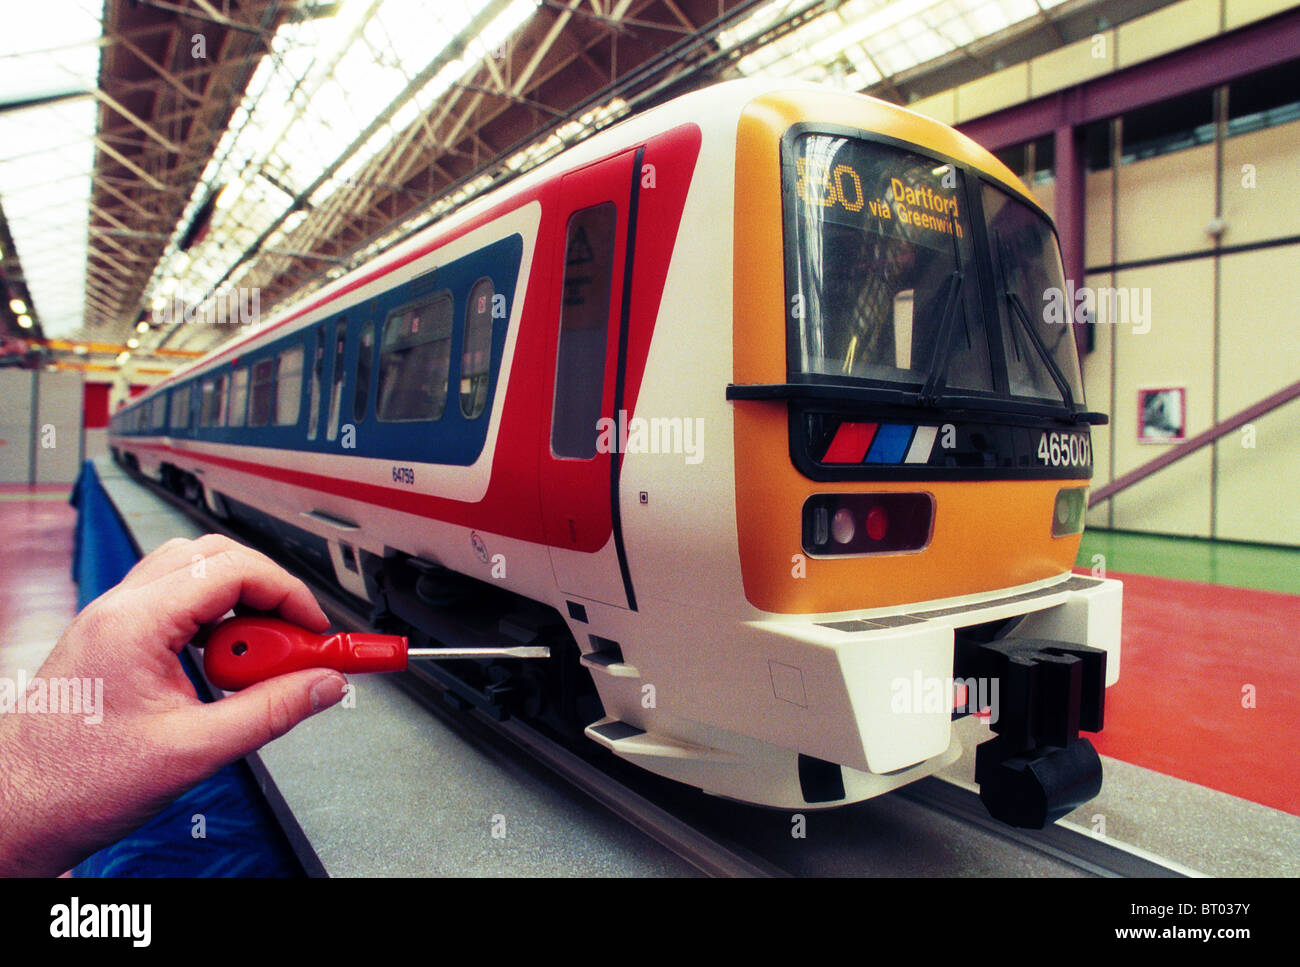 A model train at Derby ABB Train works in the UK Stock Photo